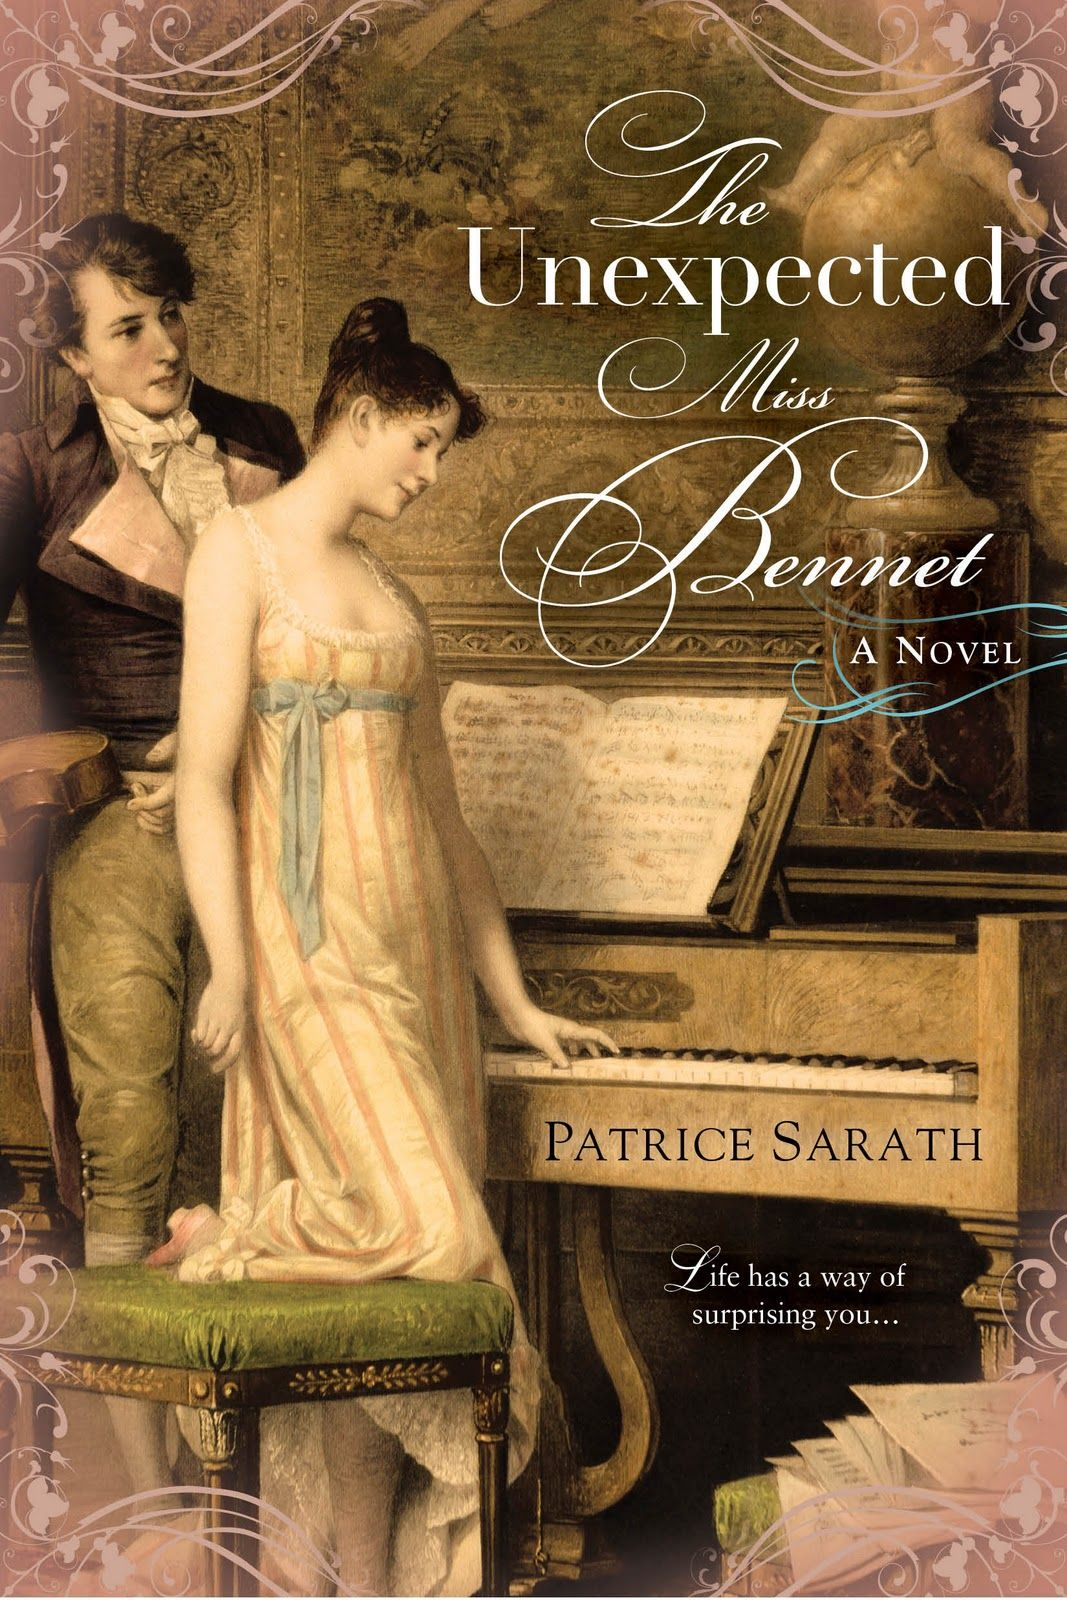 """If you loved Jane Austen's """"Pride and Prejudice"""" you will really enjoy this book."""